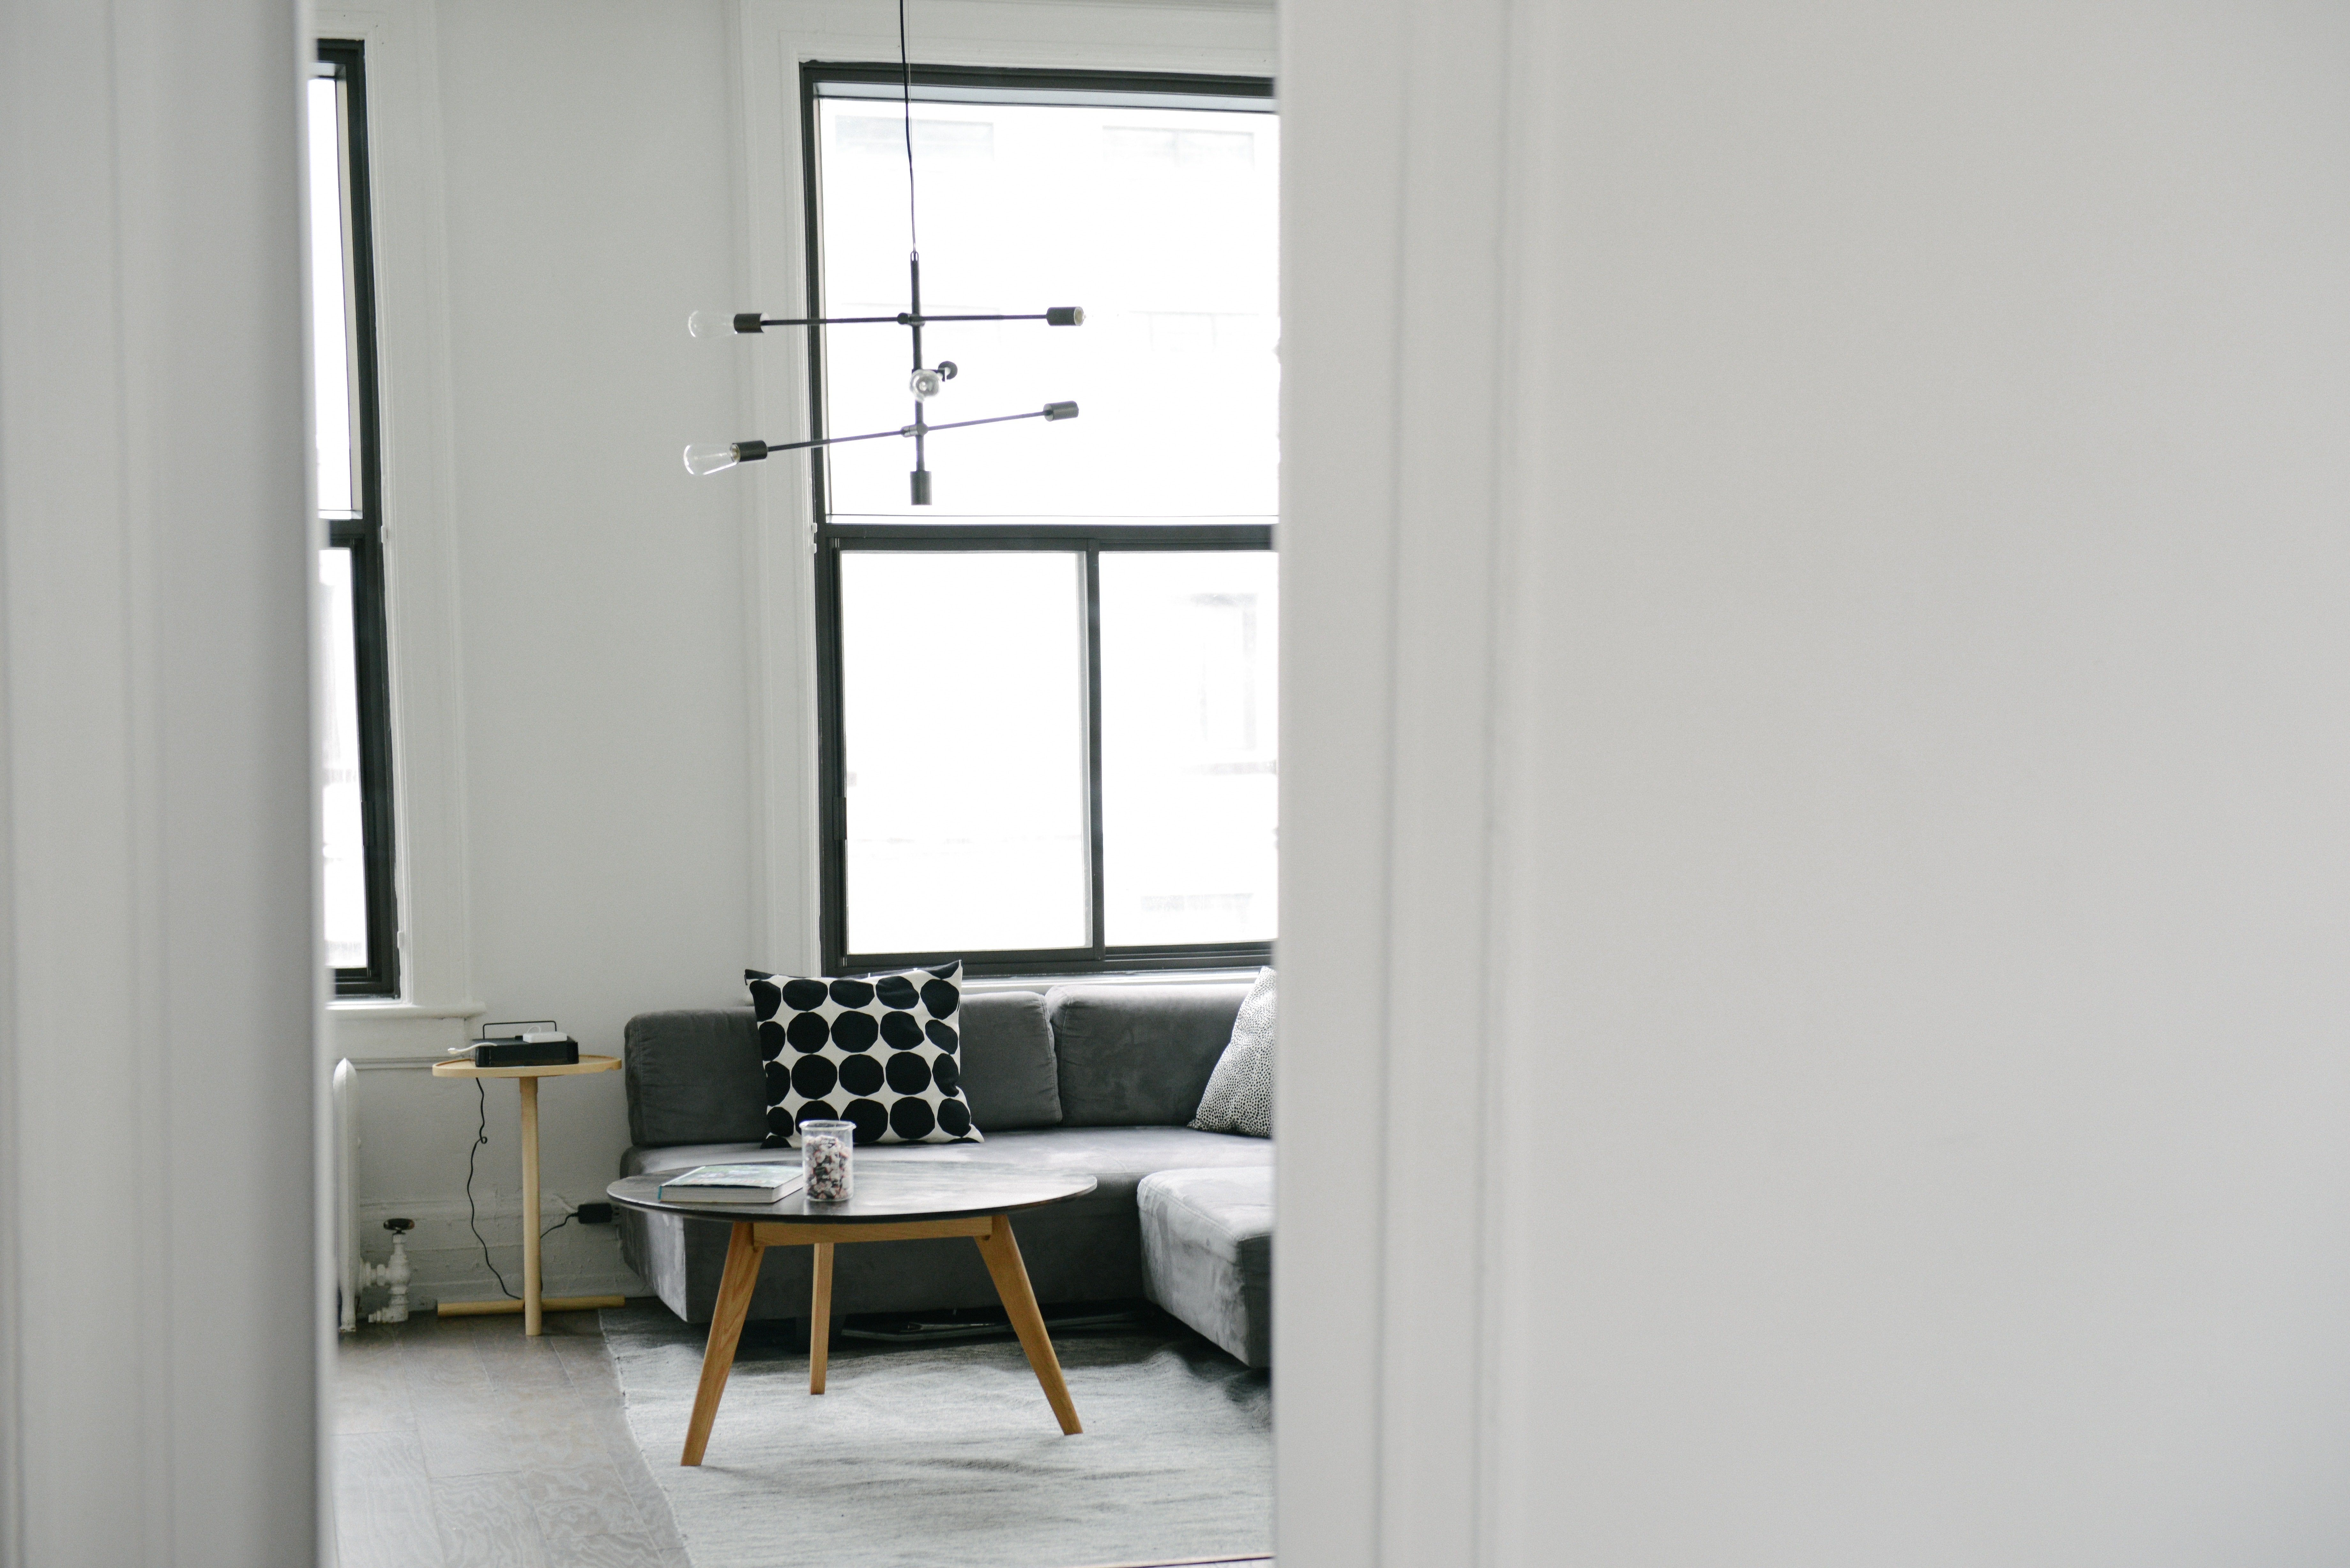 scandinavian design interior house living room coffee table light www.fromlusttilldawn.com from lust till dawn